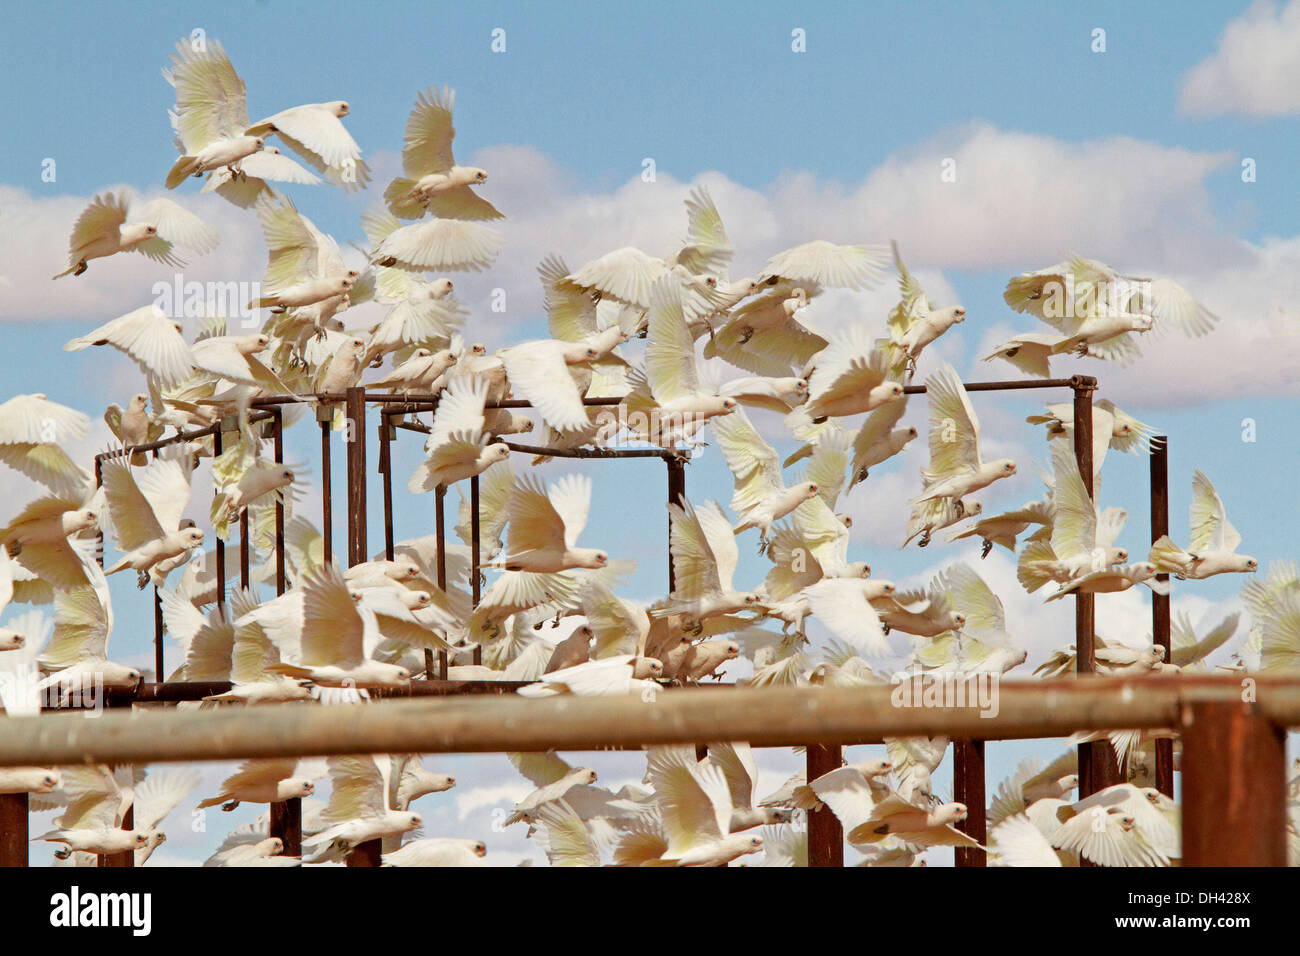 Immense flock of corellas in flight among railings of stock yards against blue sky in Australian outback near Lake Eyre SA - Stock Image